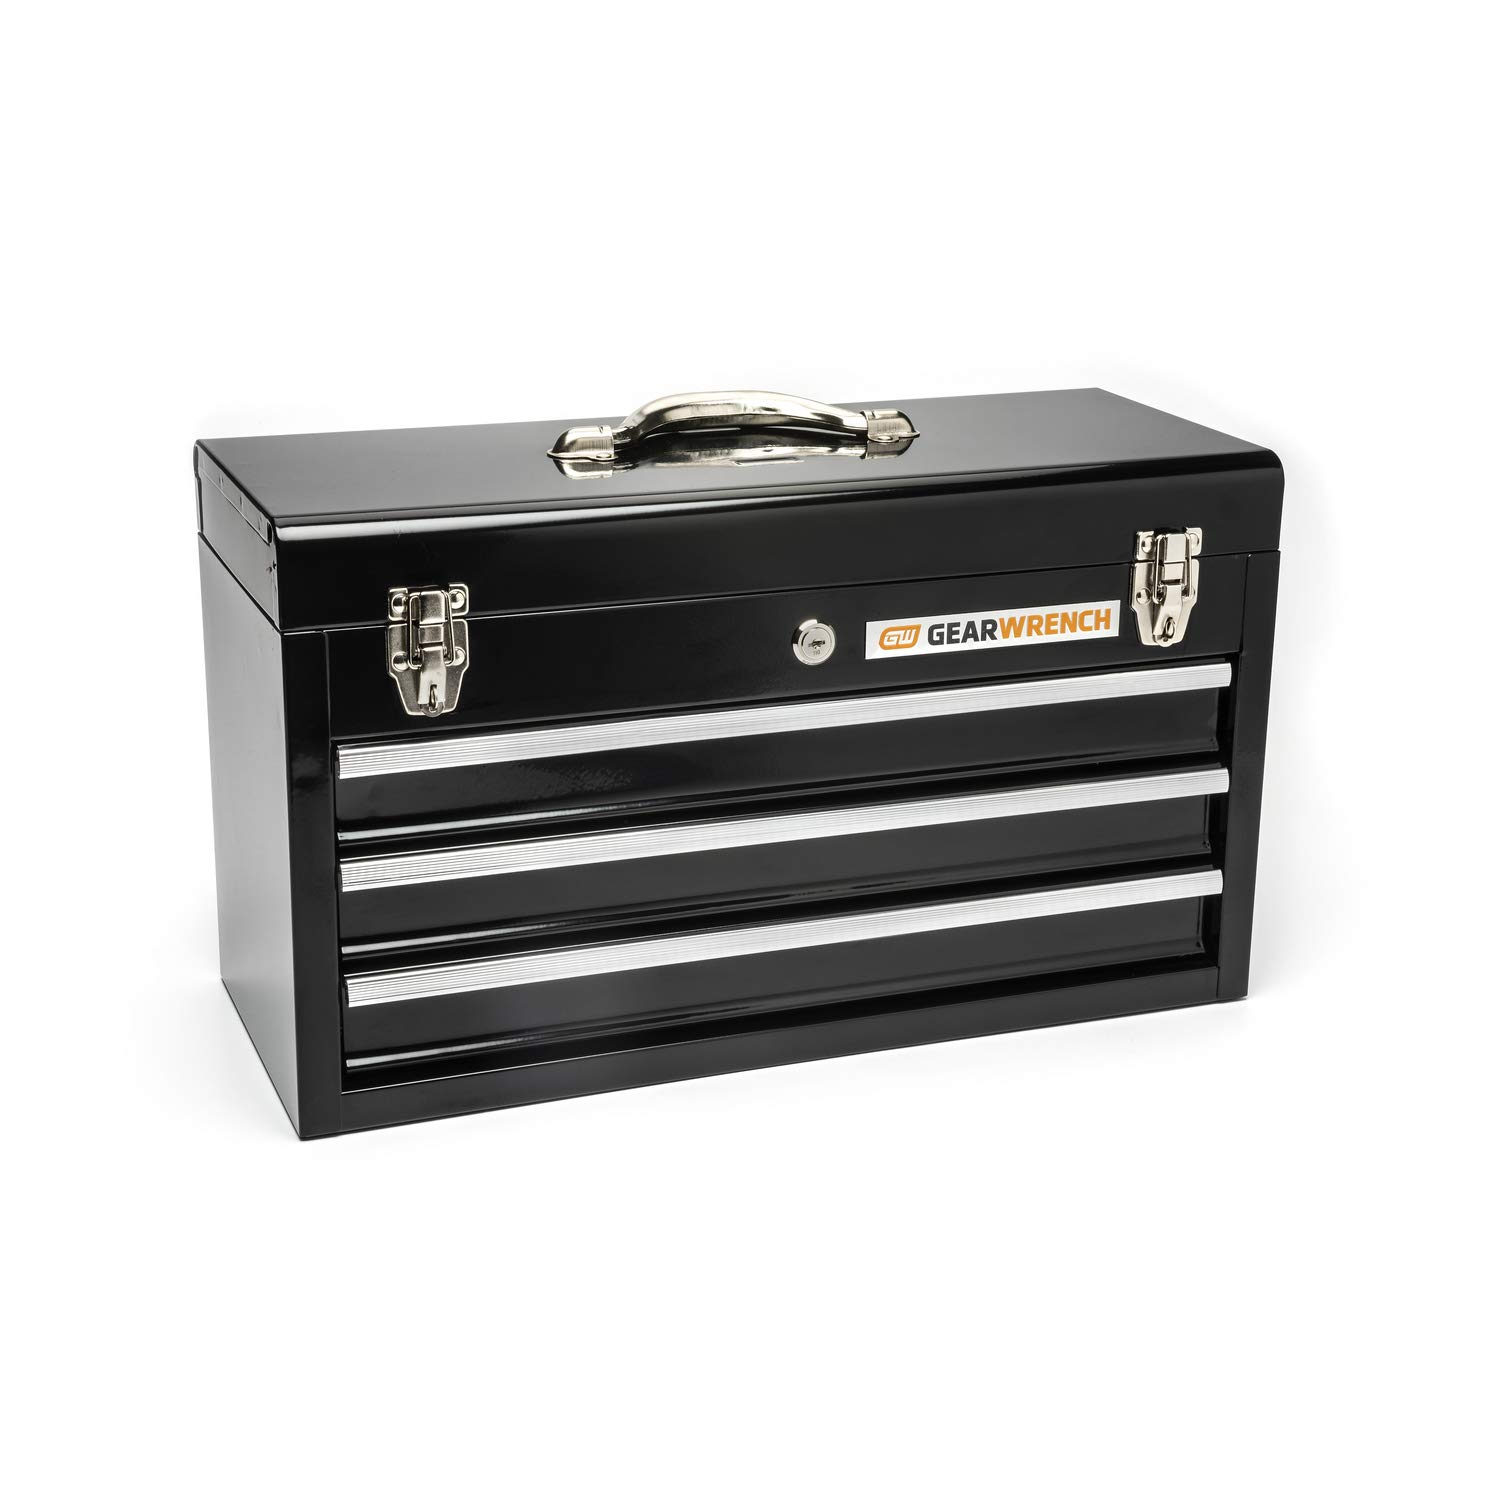 GEARWRENCH 20'' 3 Drawer Black Steel Tool Box - 83151 by GearWrench